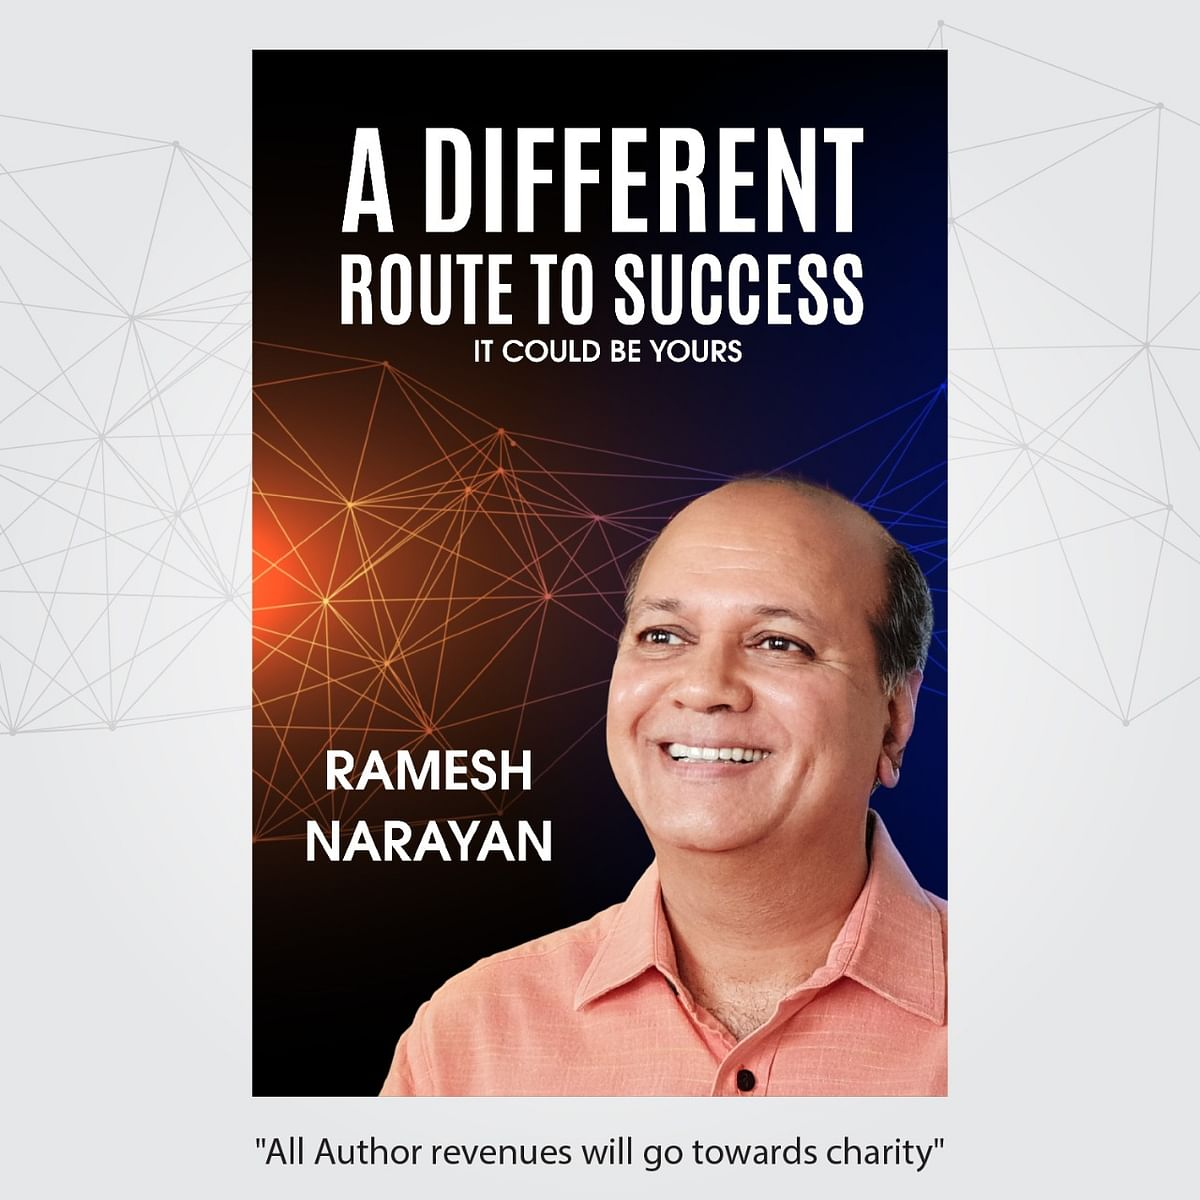 Ramesh Narayan releases book  'A Different Route to Success'